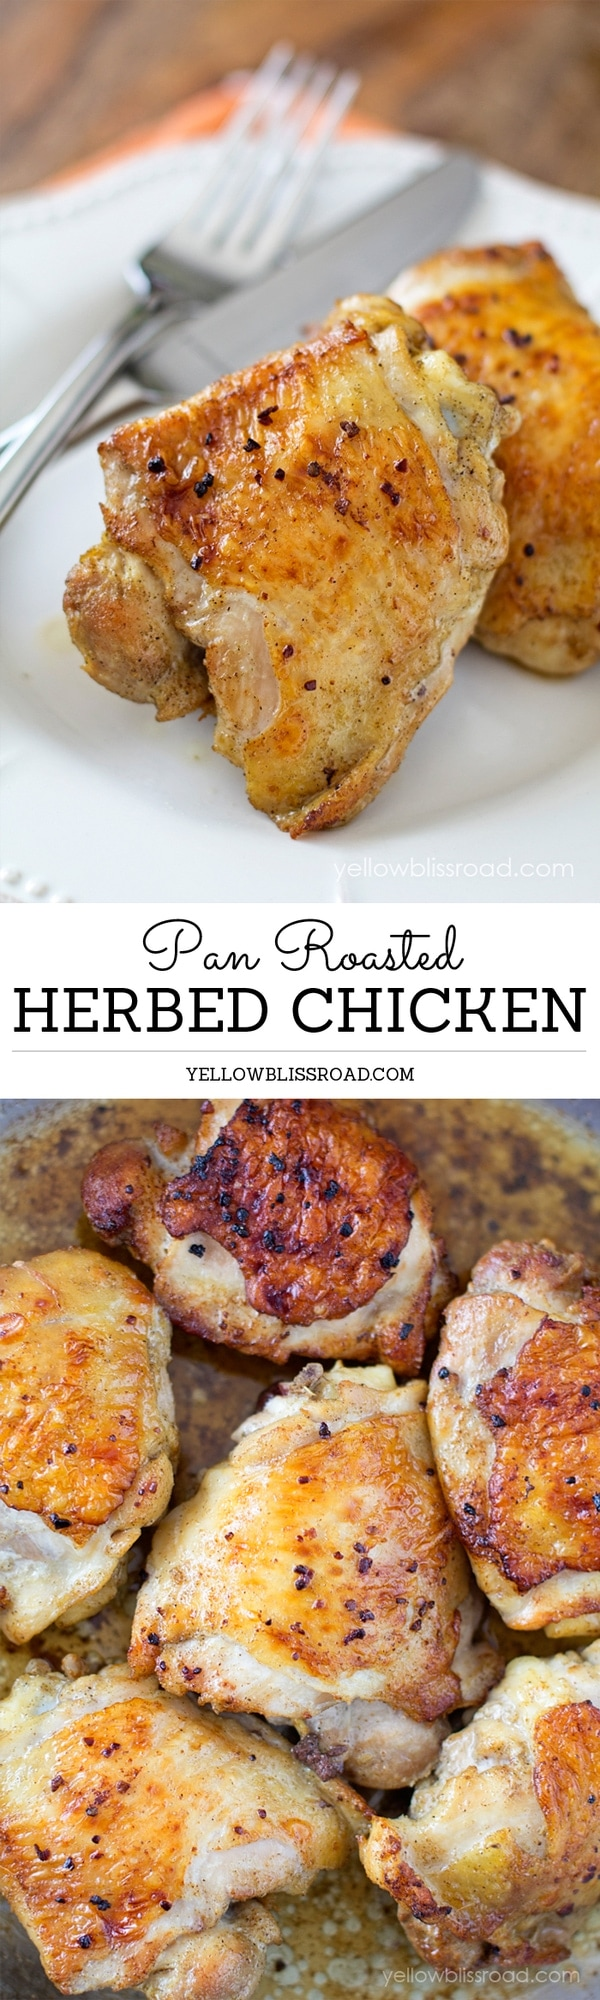 Pan Roasted Herbed Ckicken